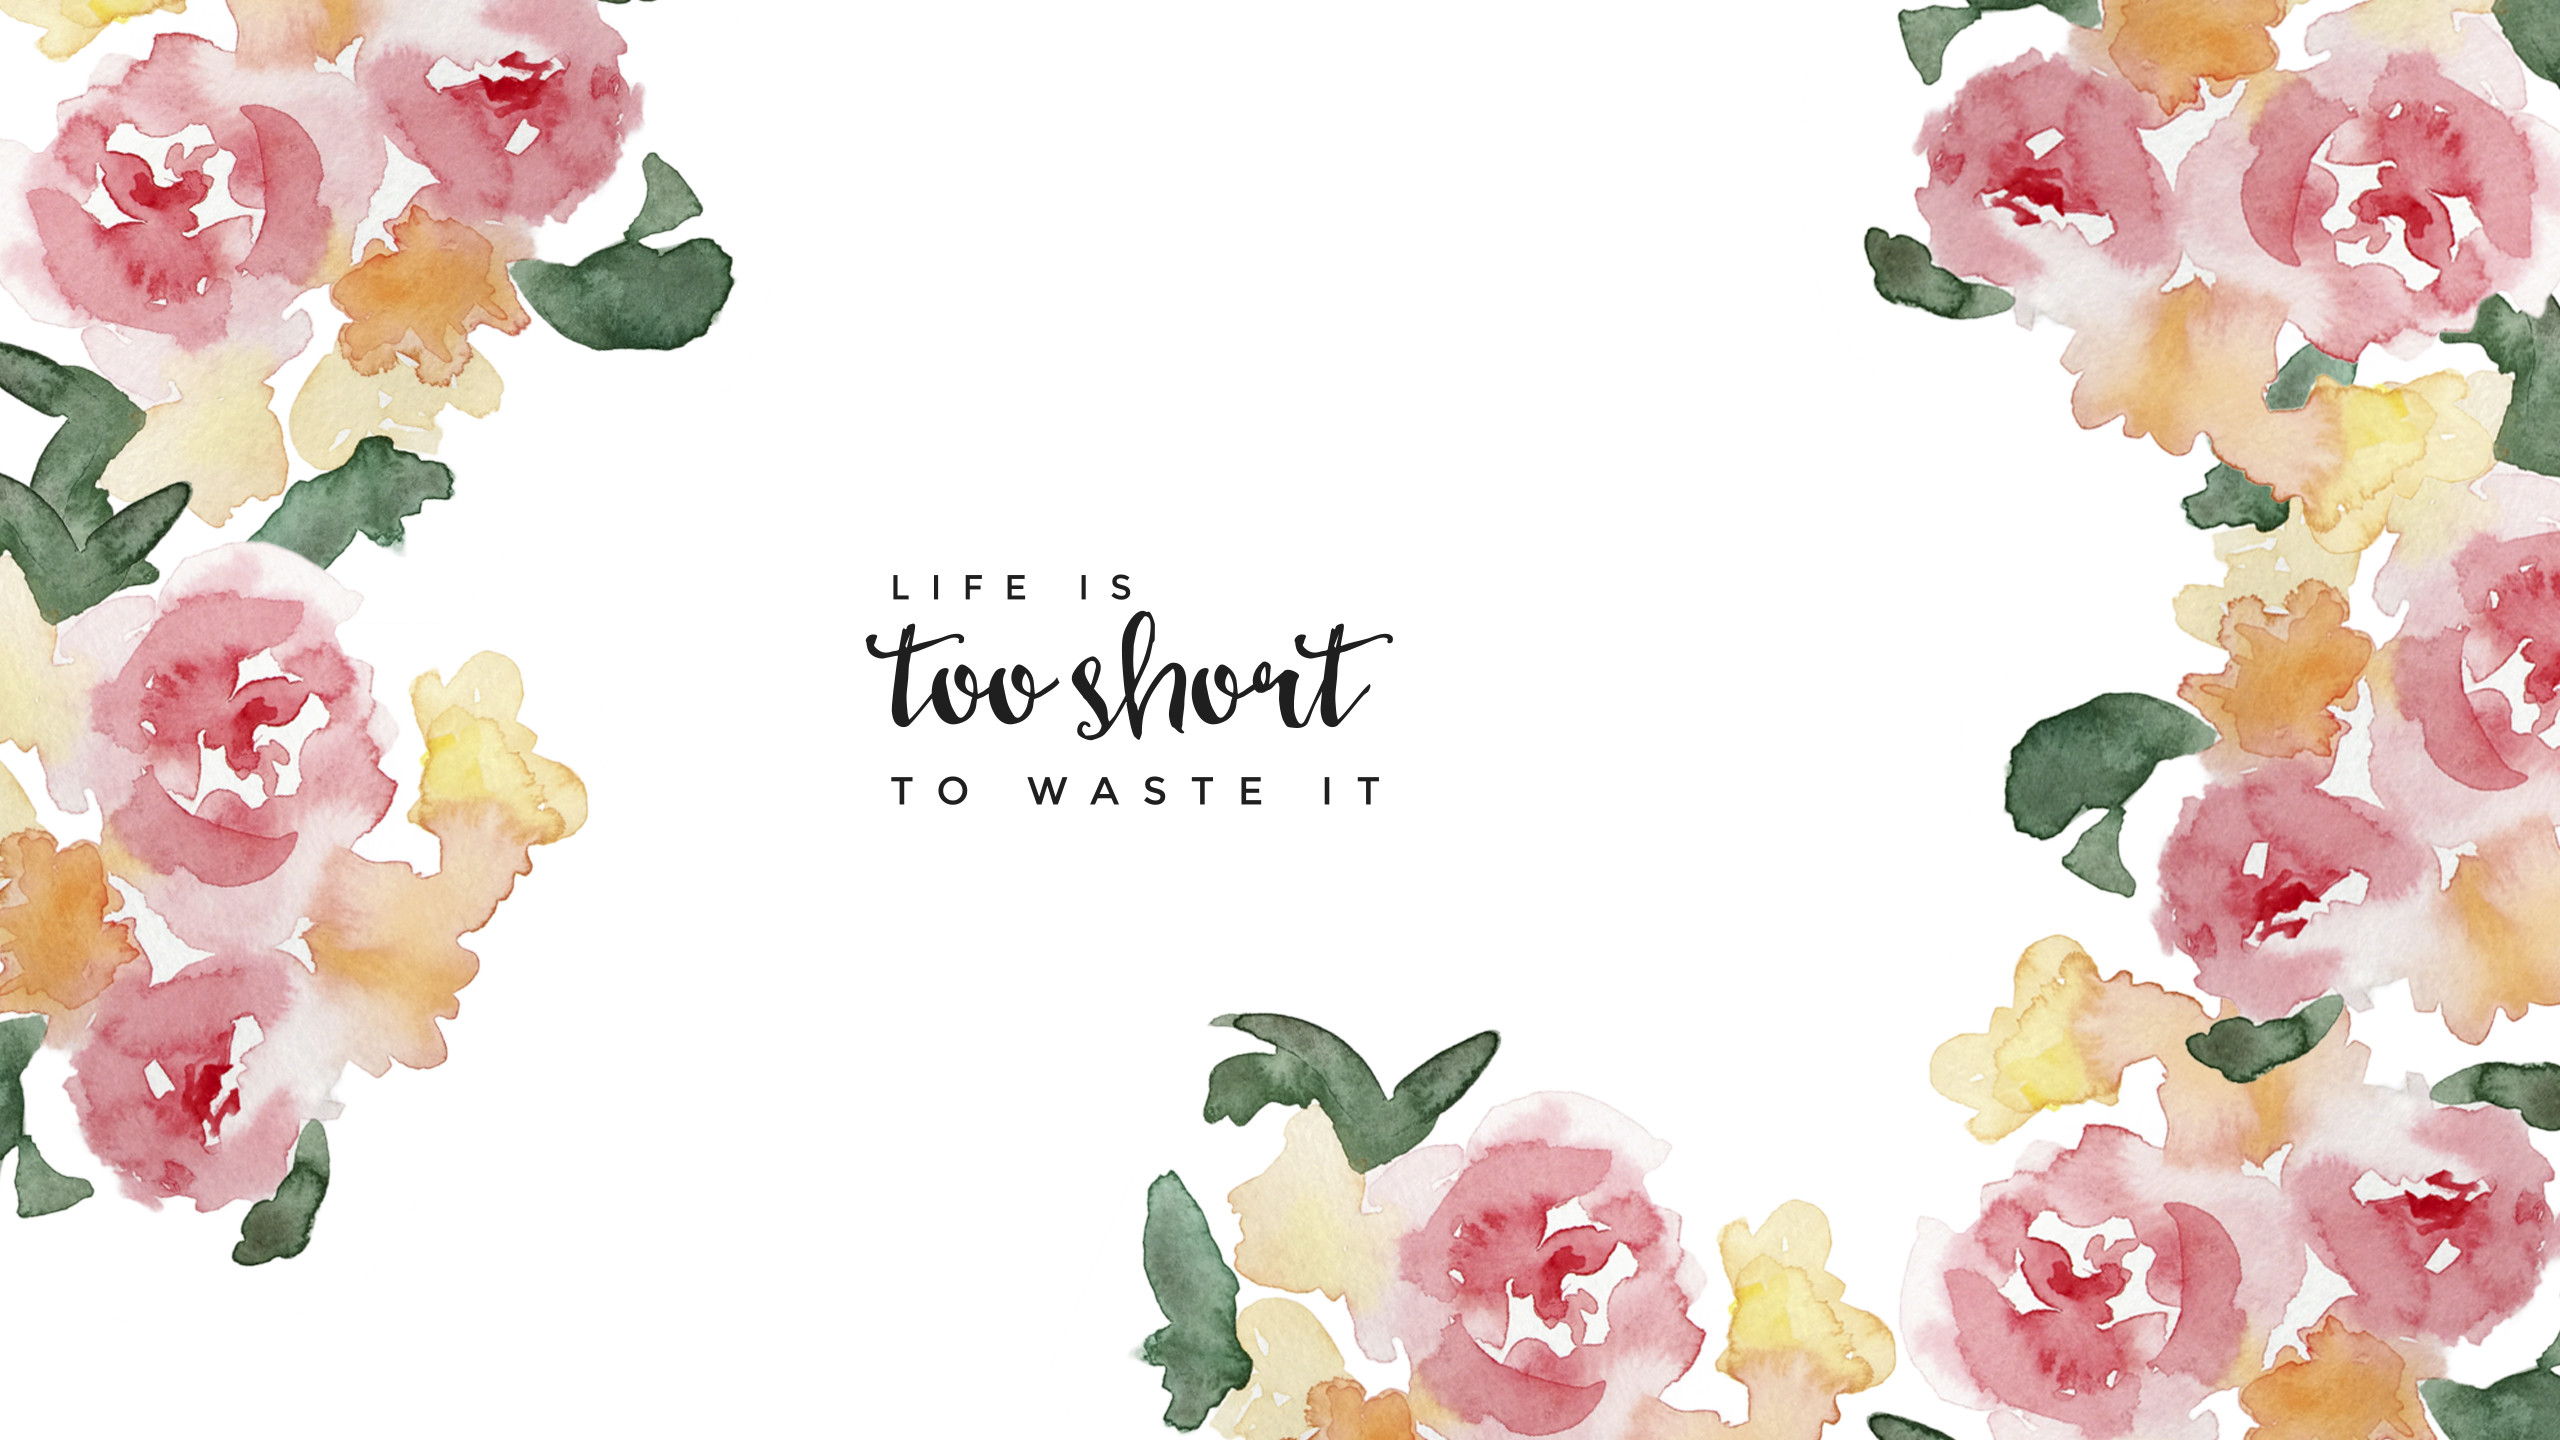 Free iMac wallpaper LIFE IS TOO SHORT TO WASTE IT #quotes #typography  #design